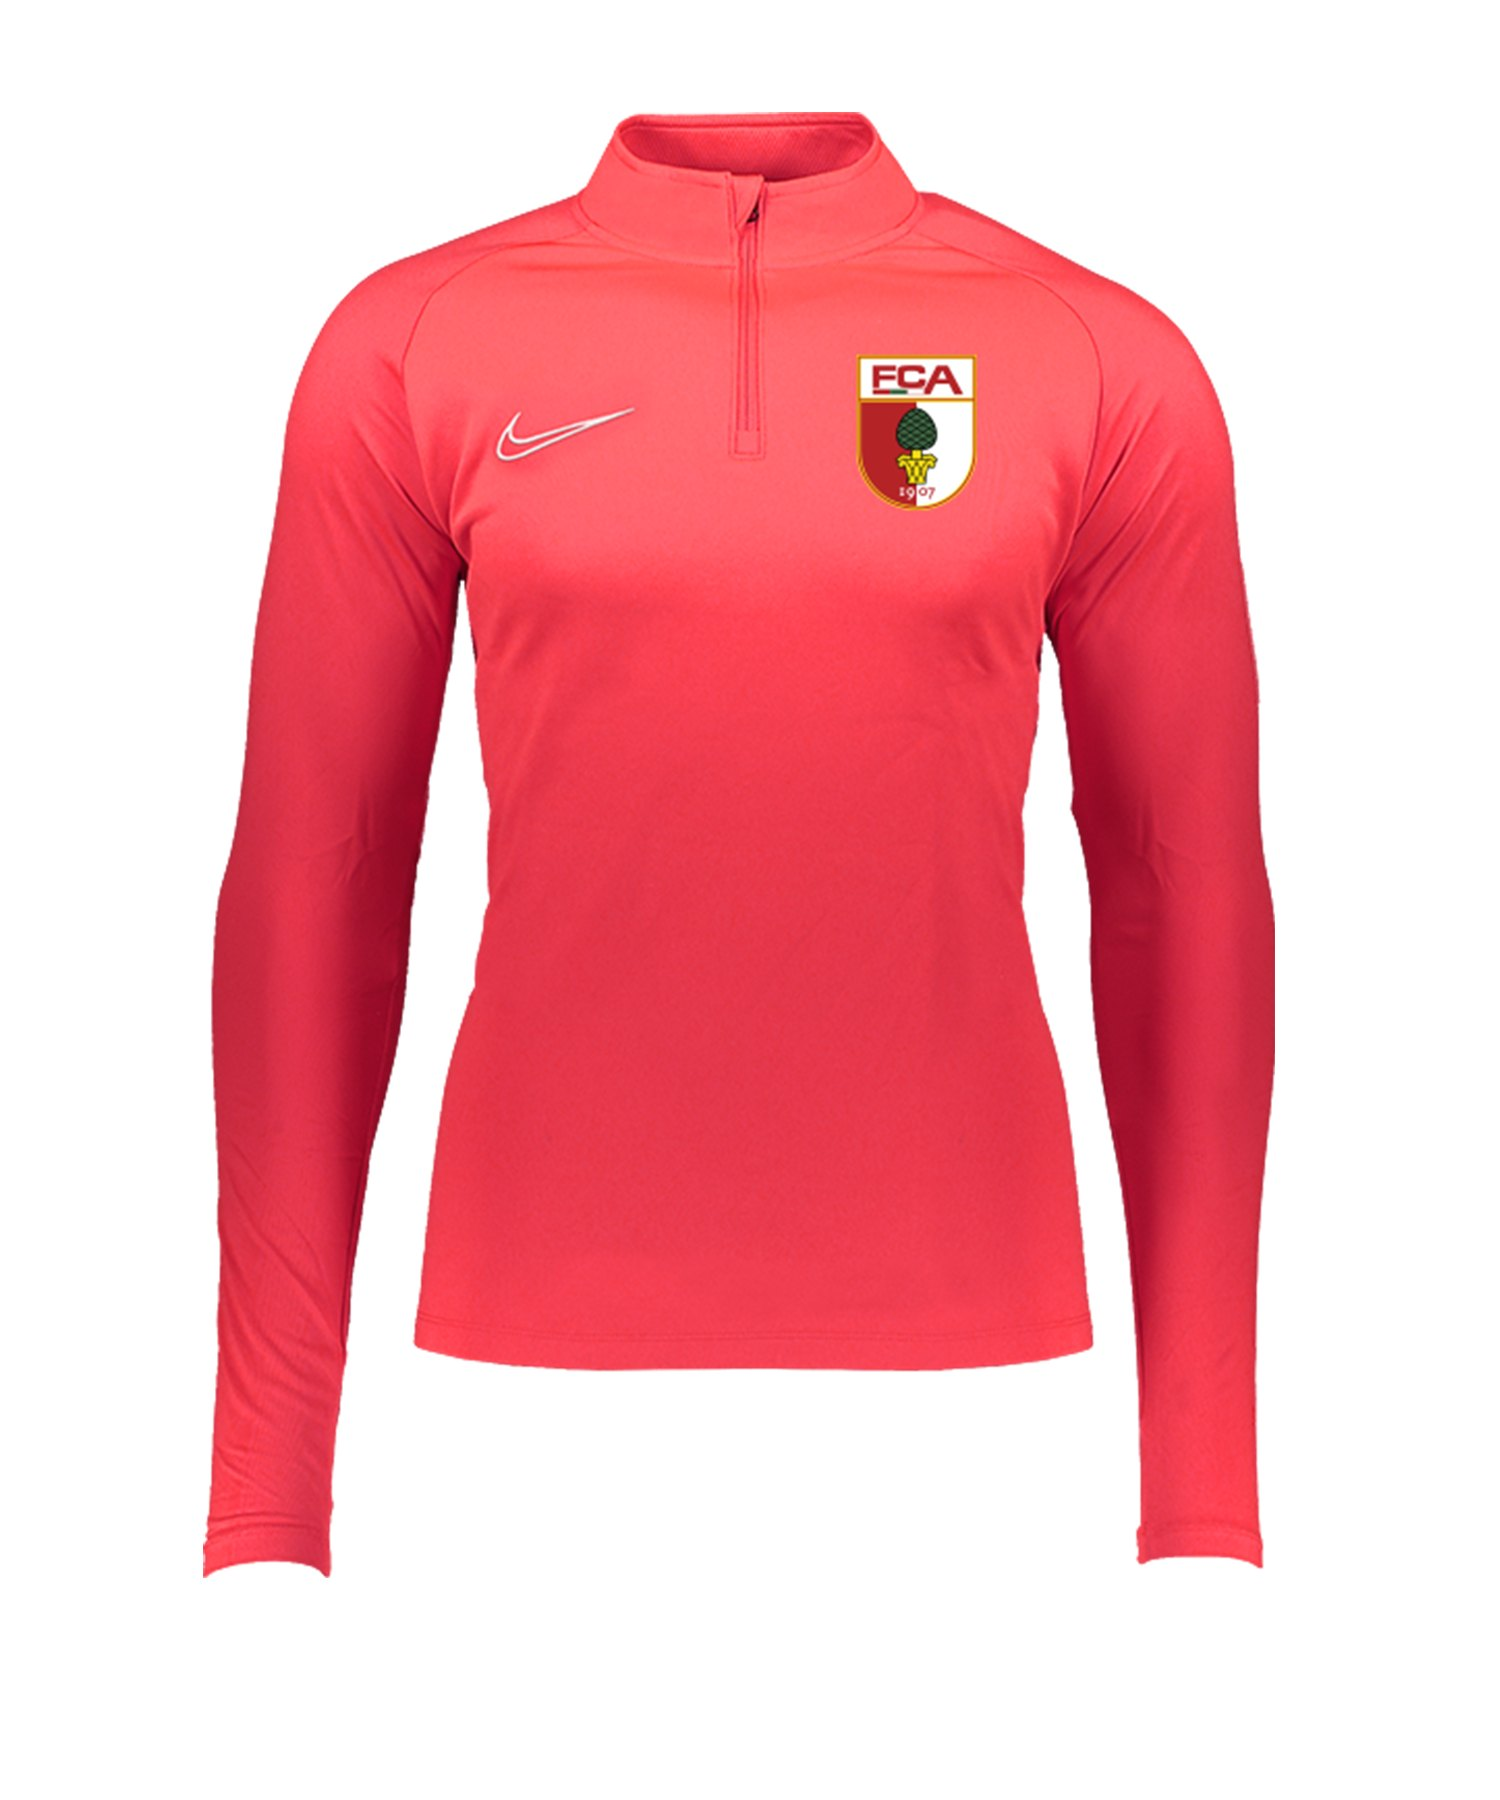 Nike FC Augsburg Trainingstop LA Kids Rot F671 - rot